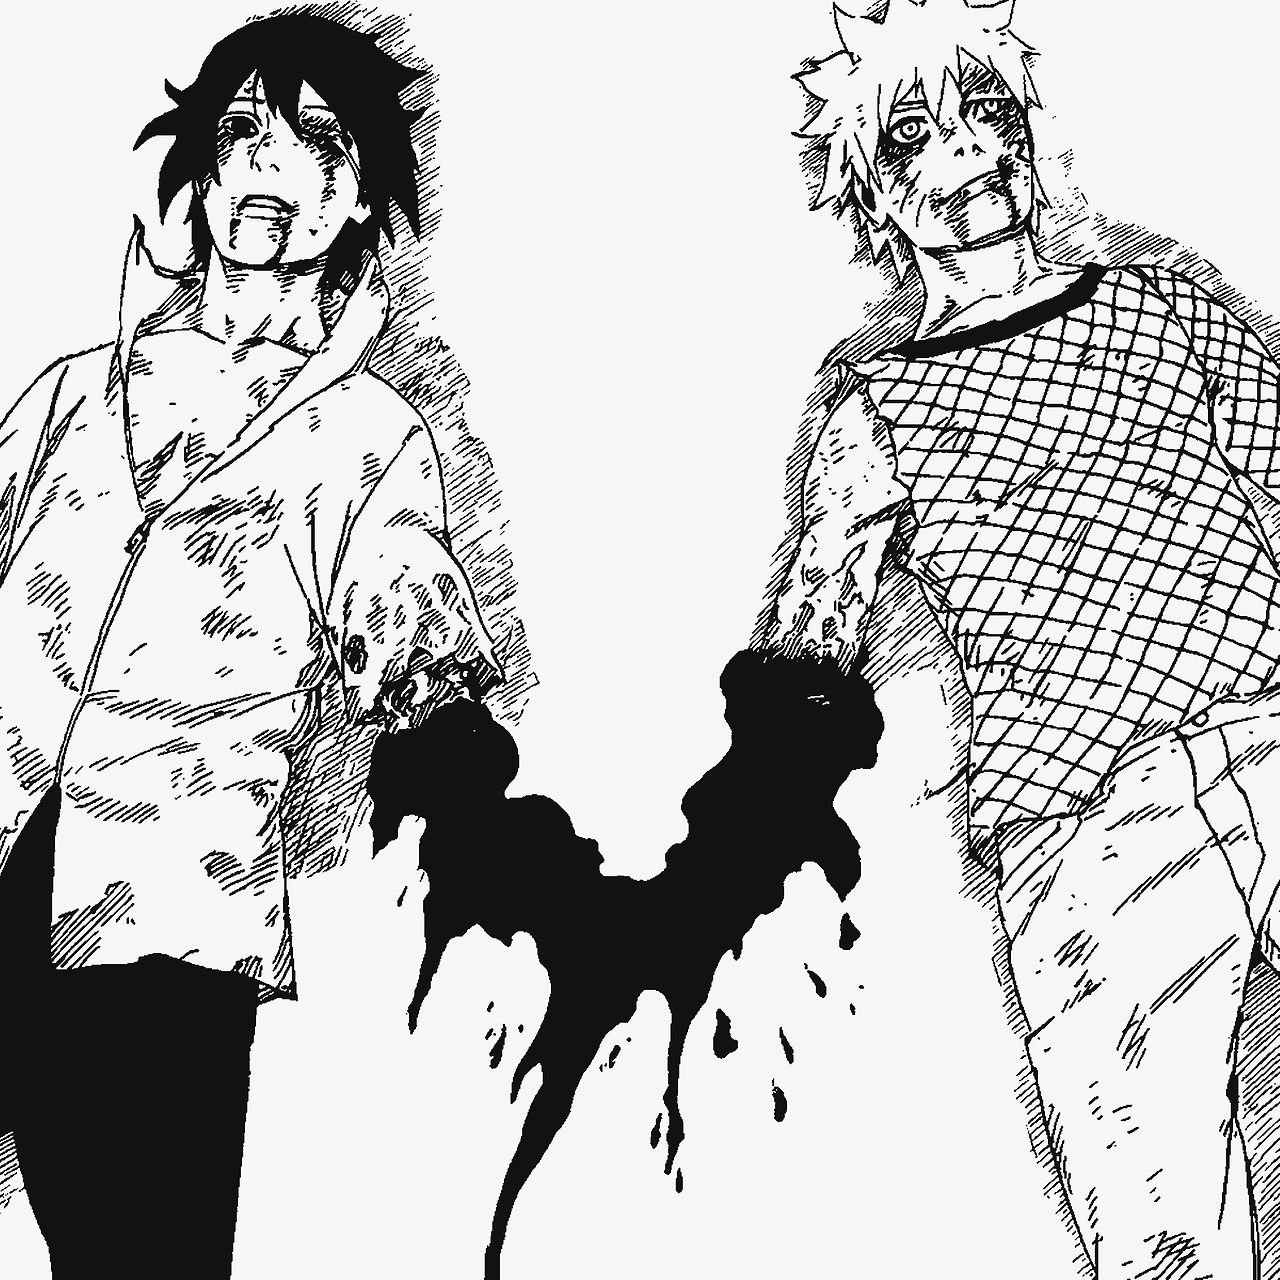 """""""The tale of their friendship: And so they fought. And so they laughed. Friends. Before they knew it, they were inseperable.""""  Naruto 698"""